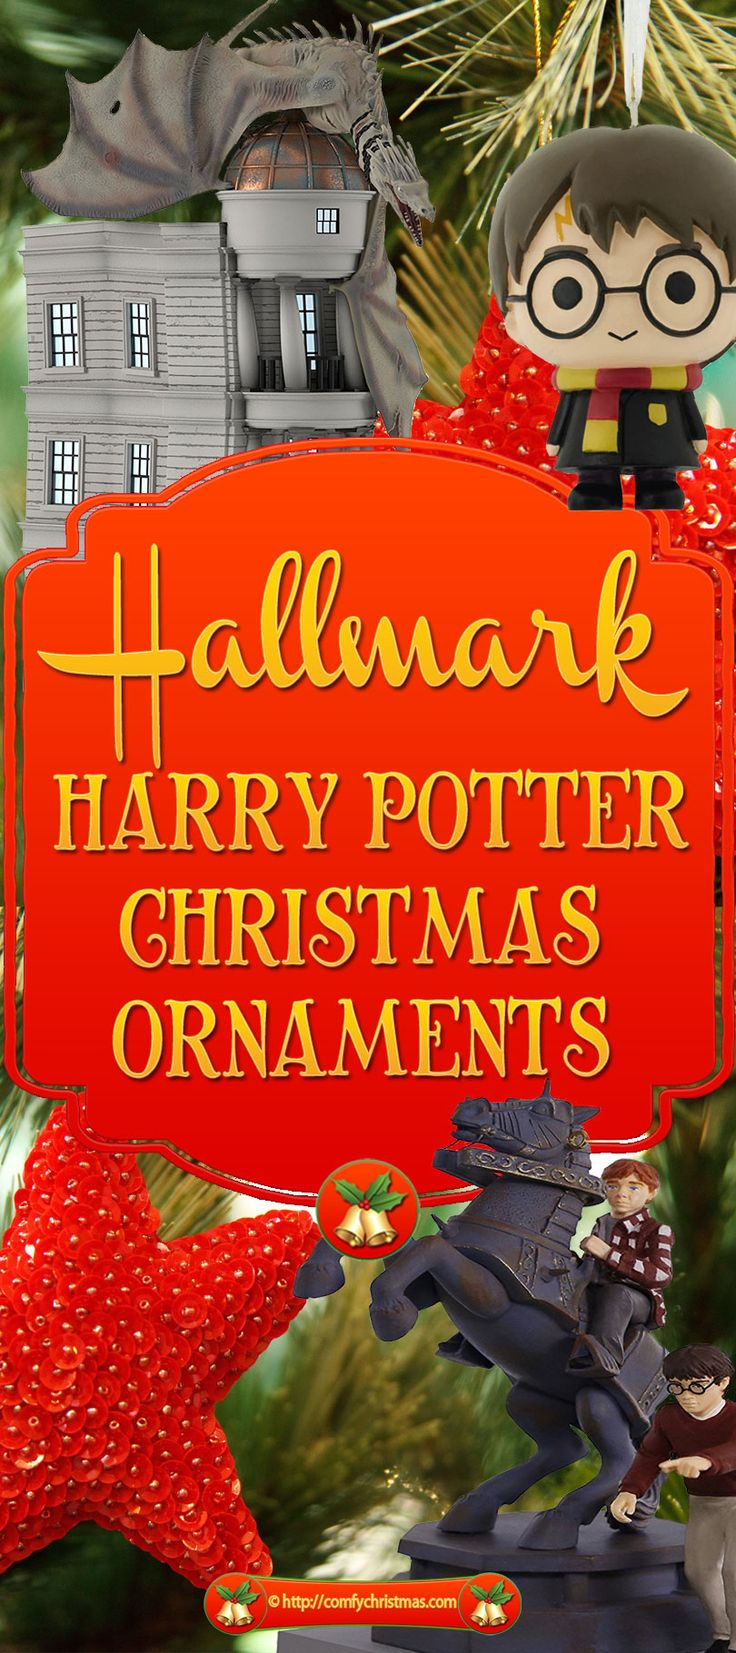 You'll find plenty of these magical Hallmark Harry Potter Christmas Ornaments that perfect for fans of Harry Potter and collectors as gifts or Christmas Tree Ornaments.